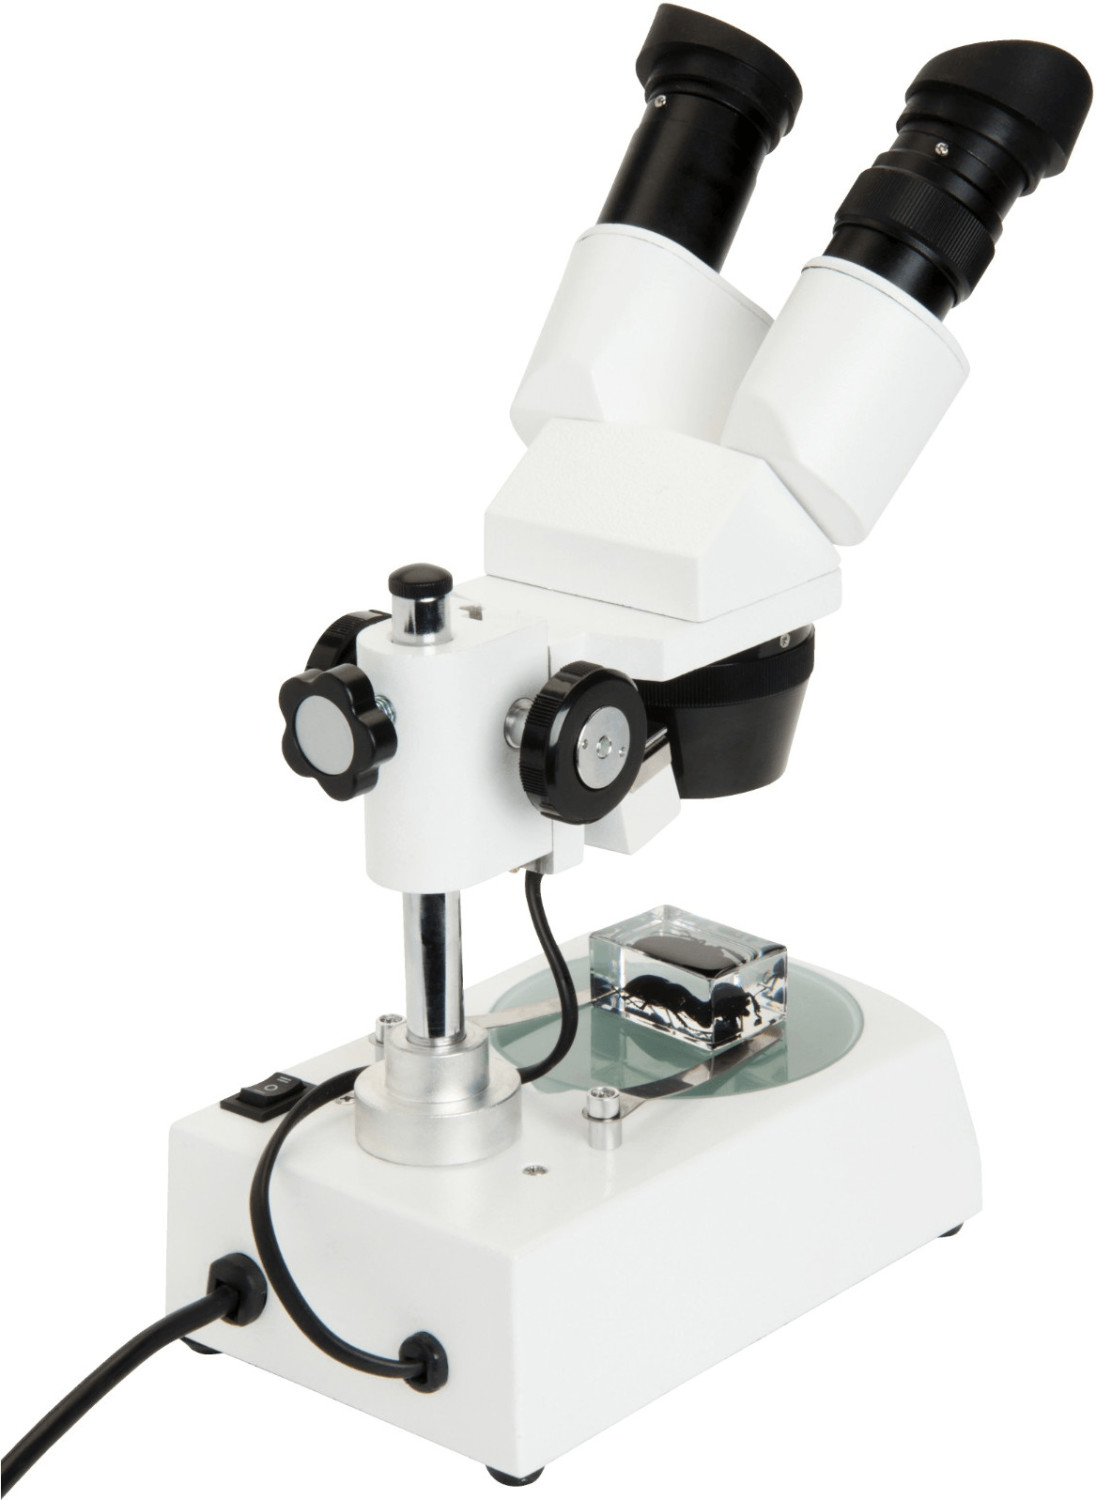 Celestron Labs S10-60 Stereolupe